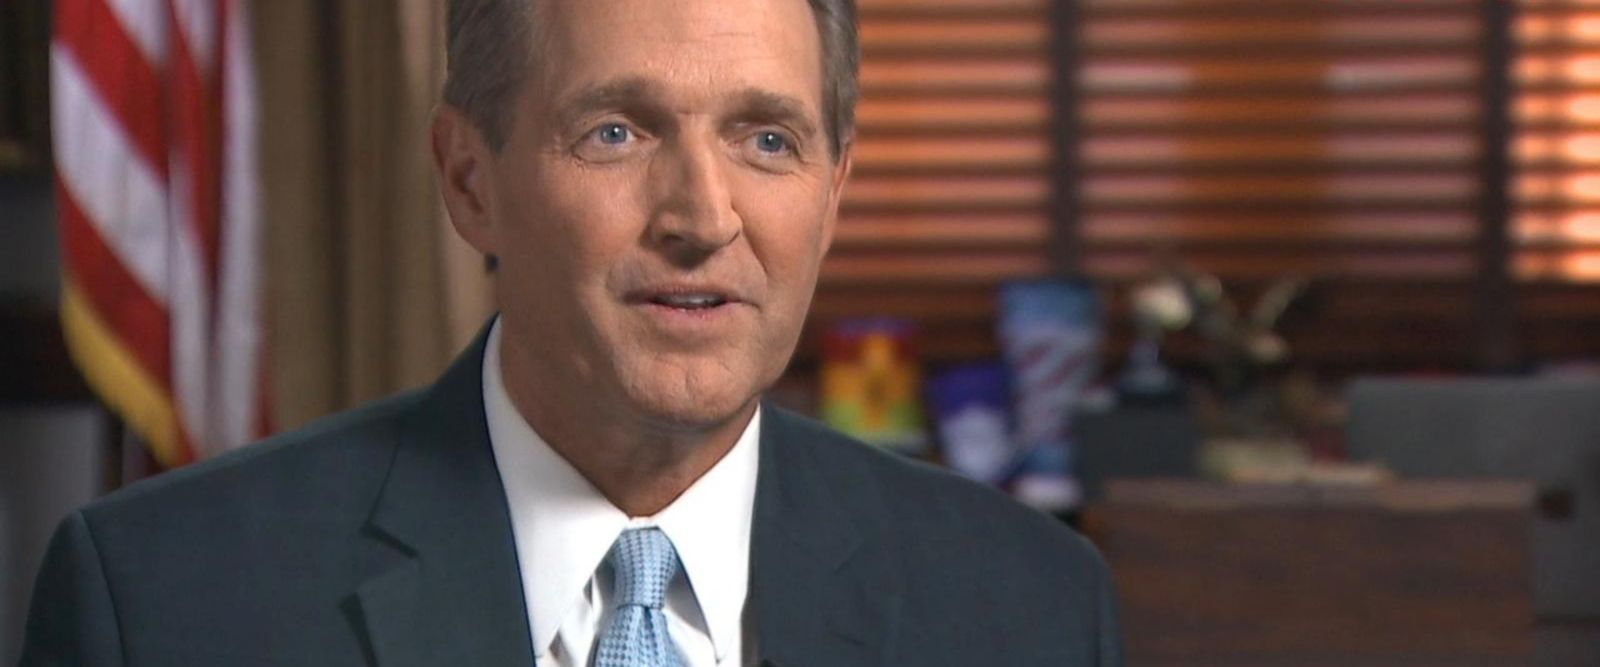 VIDEO: Roy Moore will be 'lasting' stain on Republican Party, Sen. Jeff Flake says